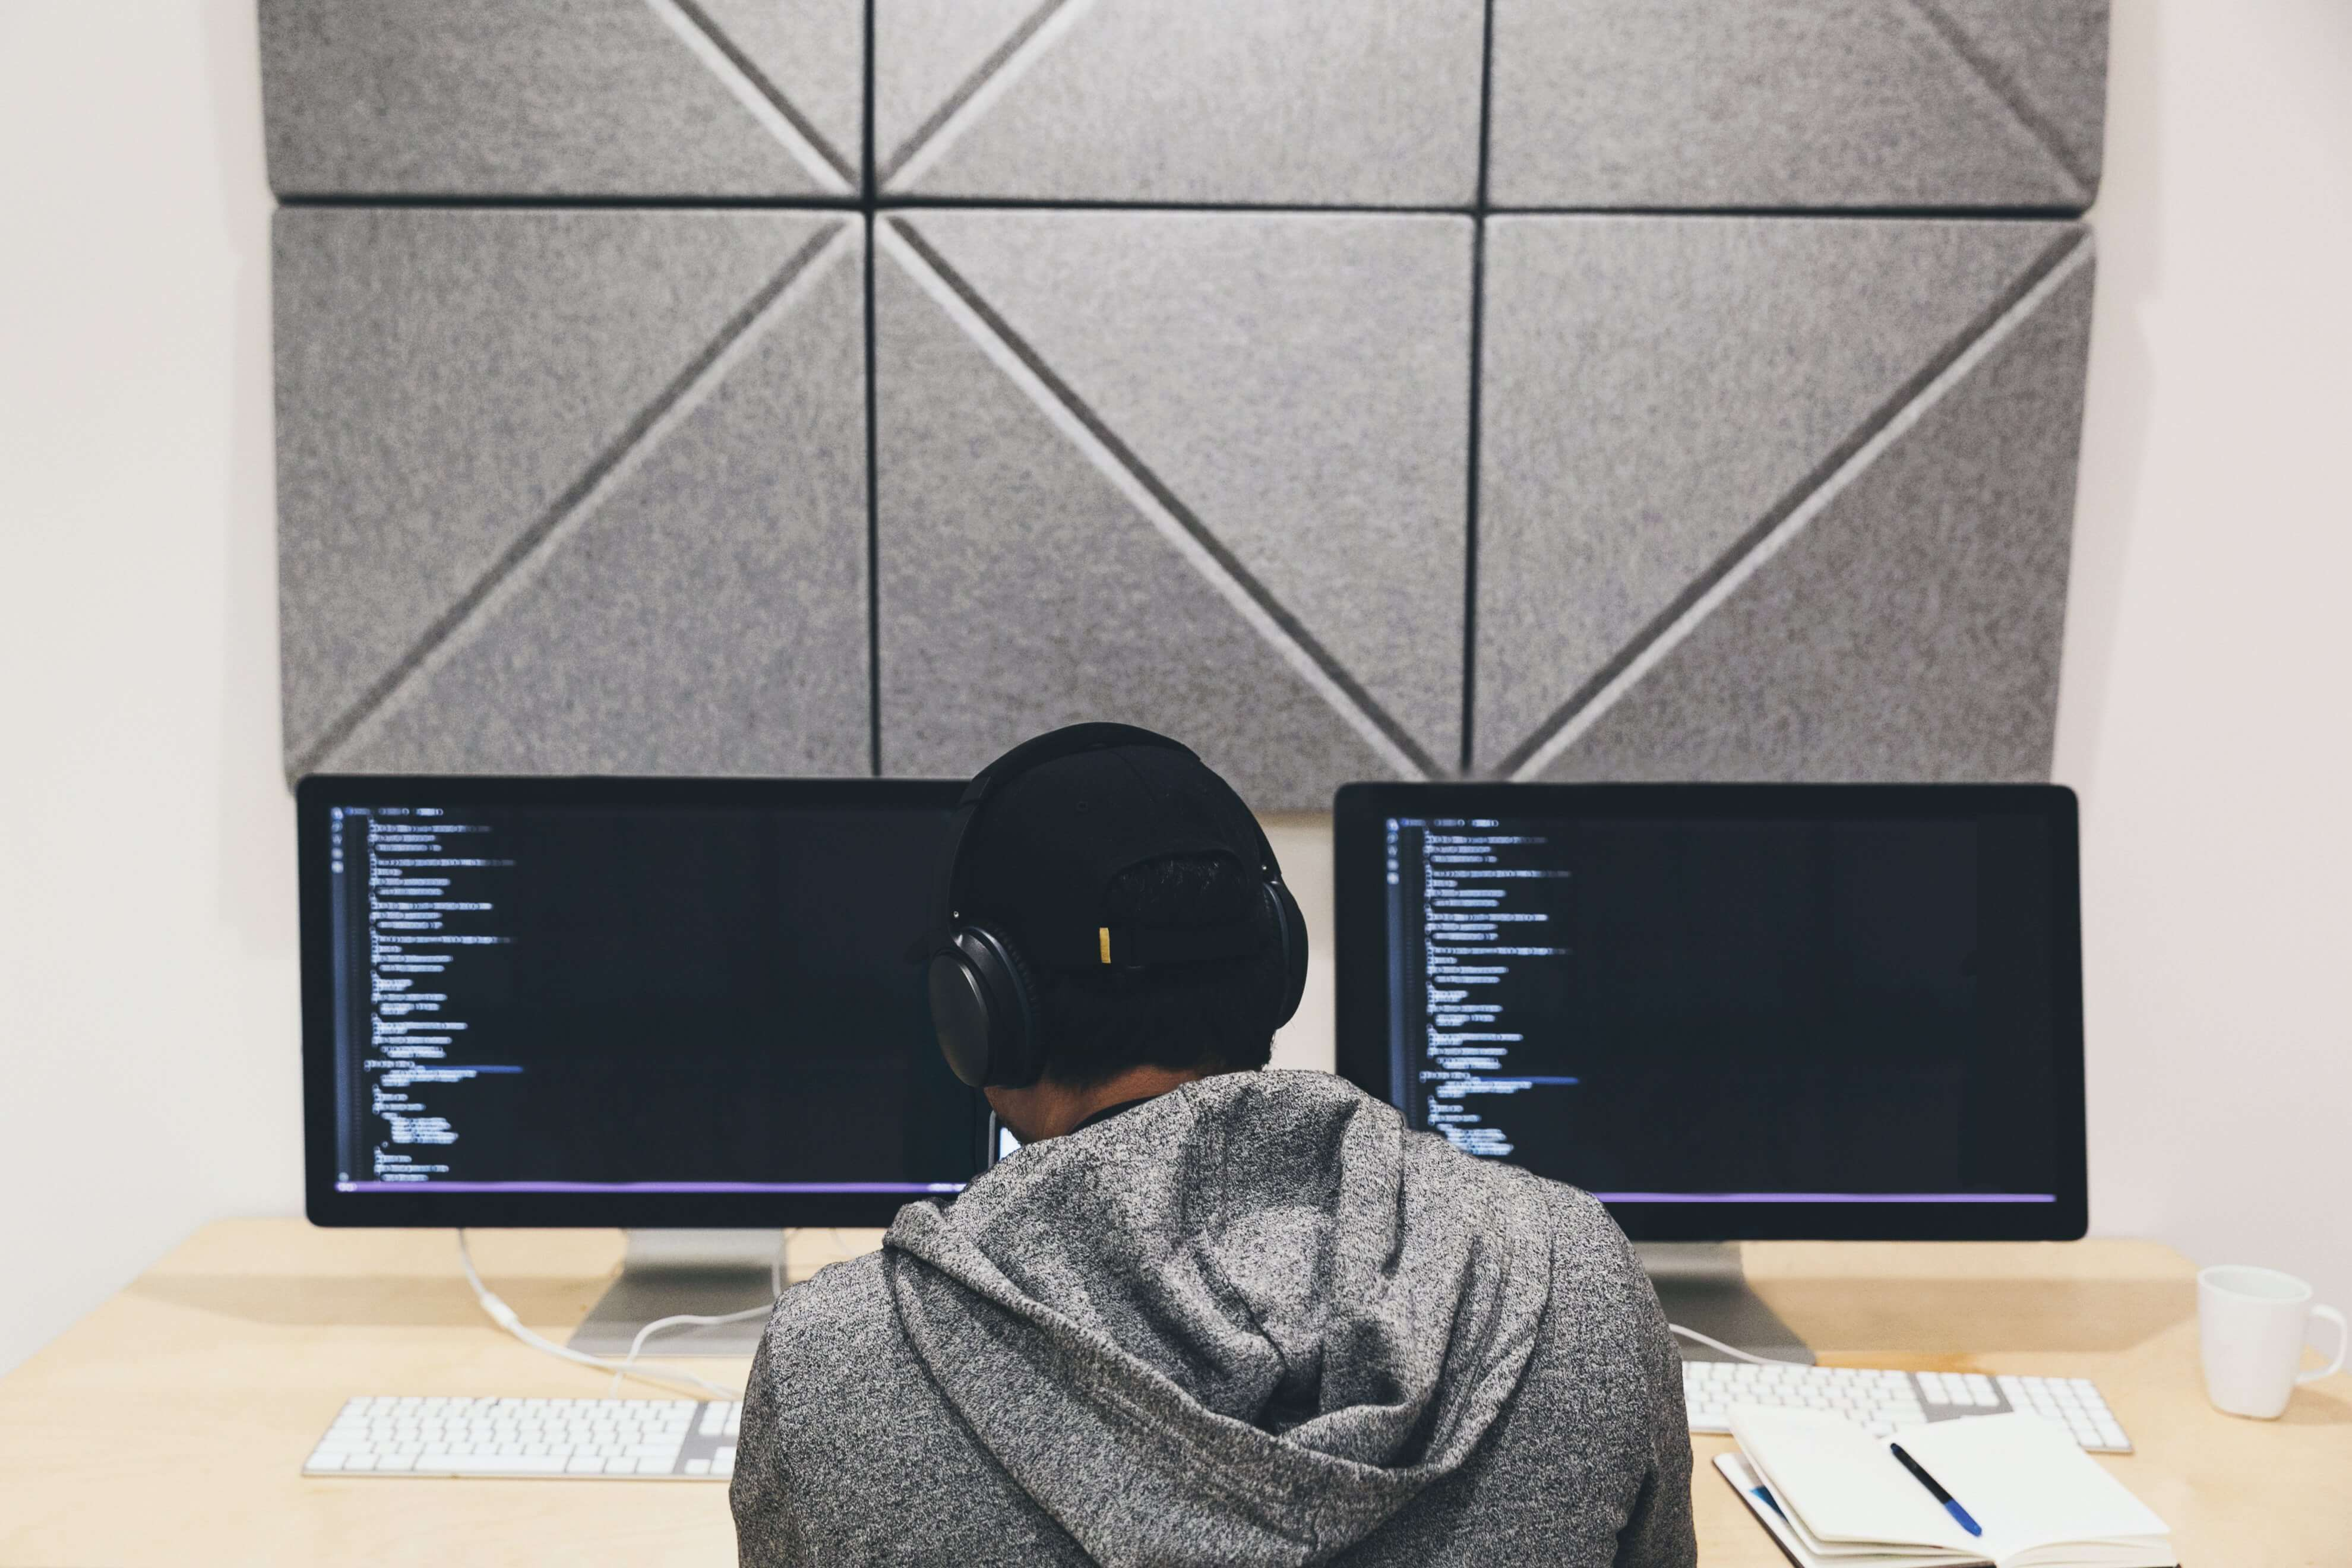 A software developer coding on two monitors